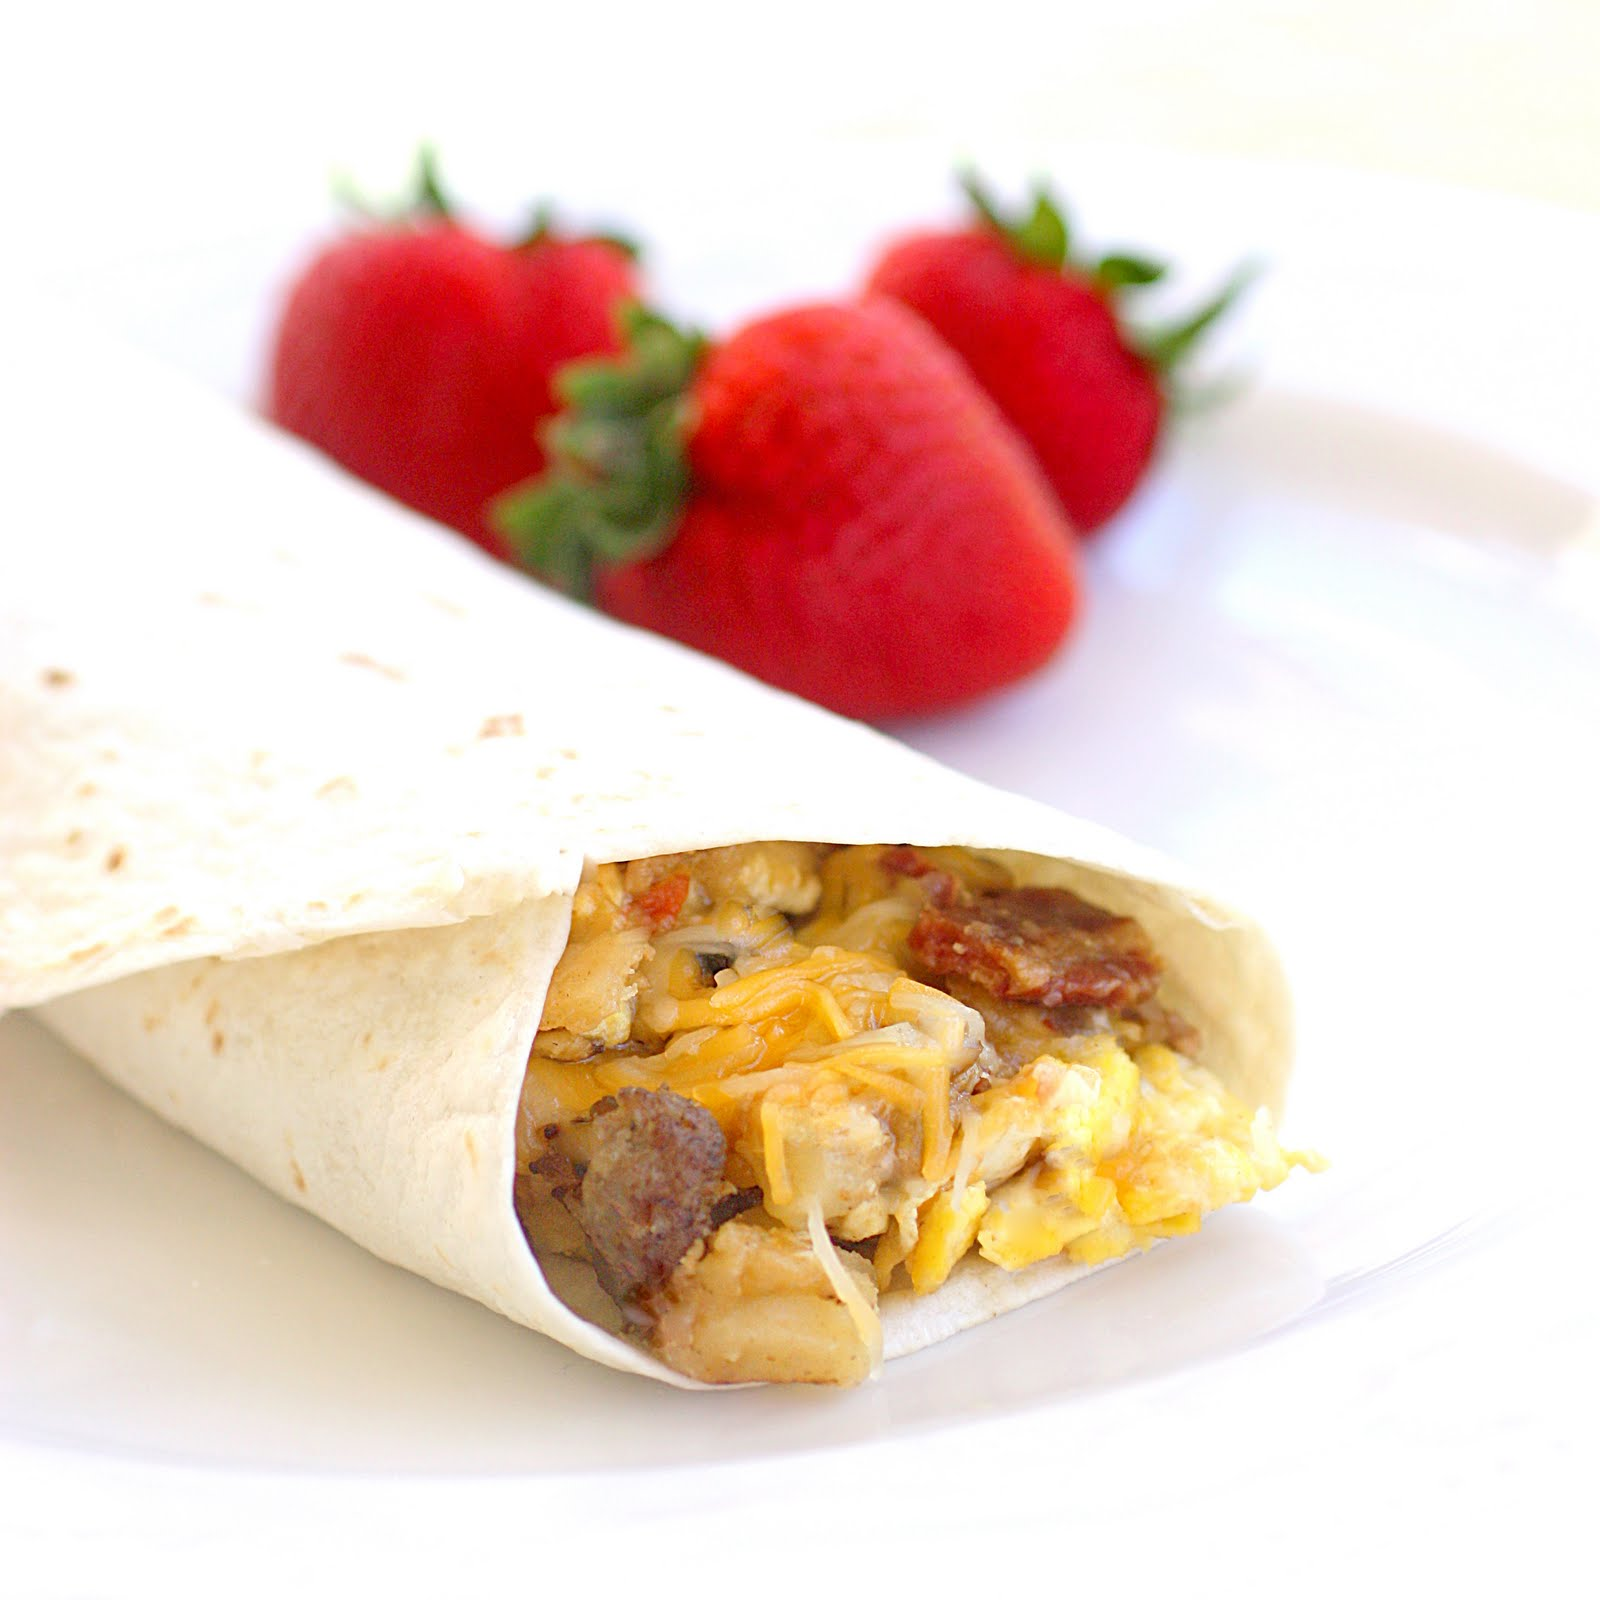 Sausage and Egg Breakfast Burritos